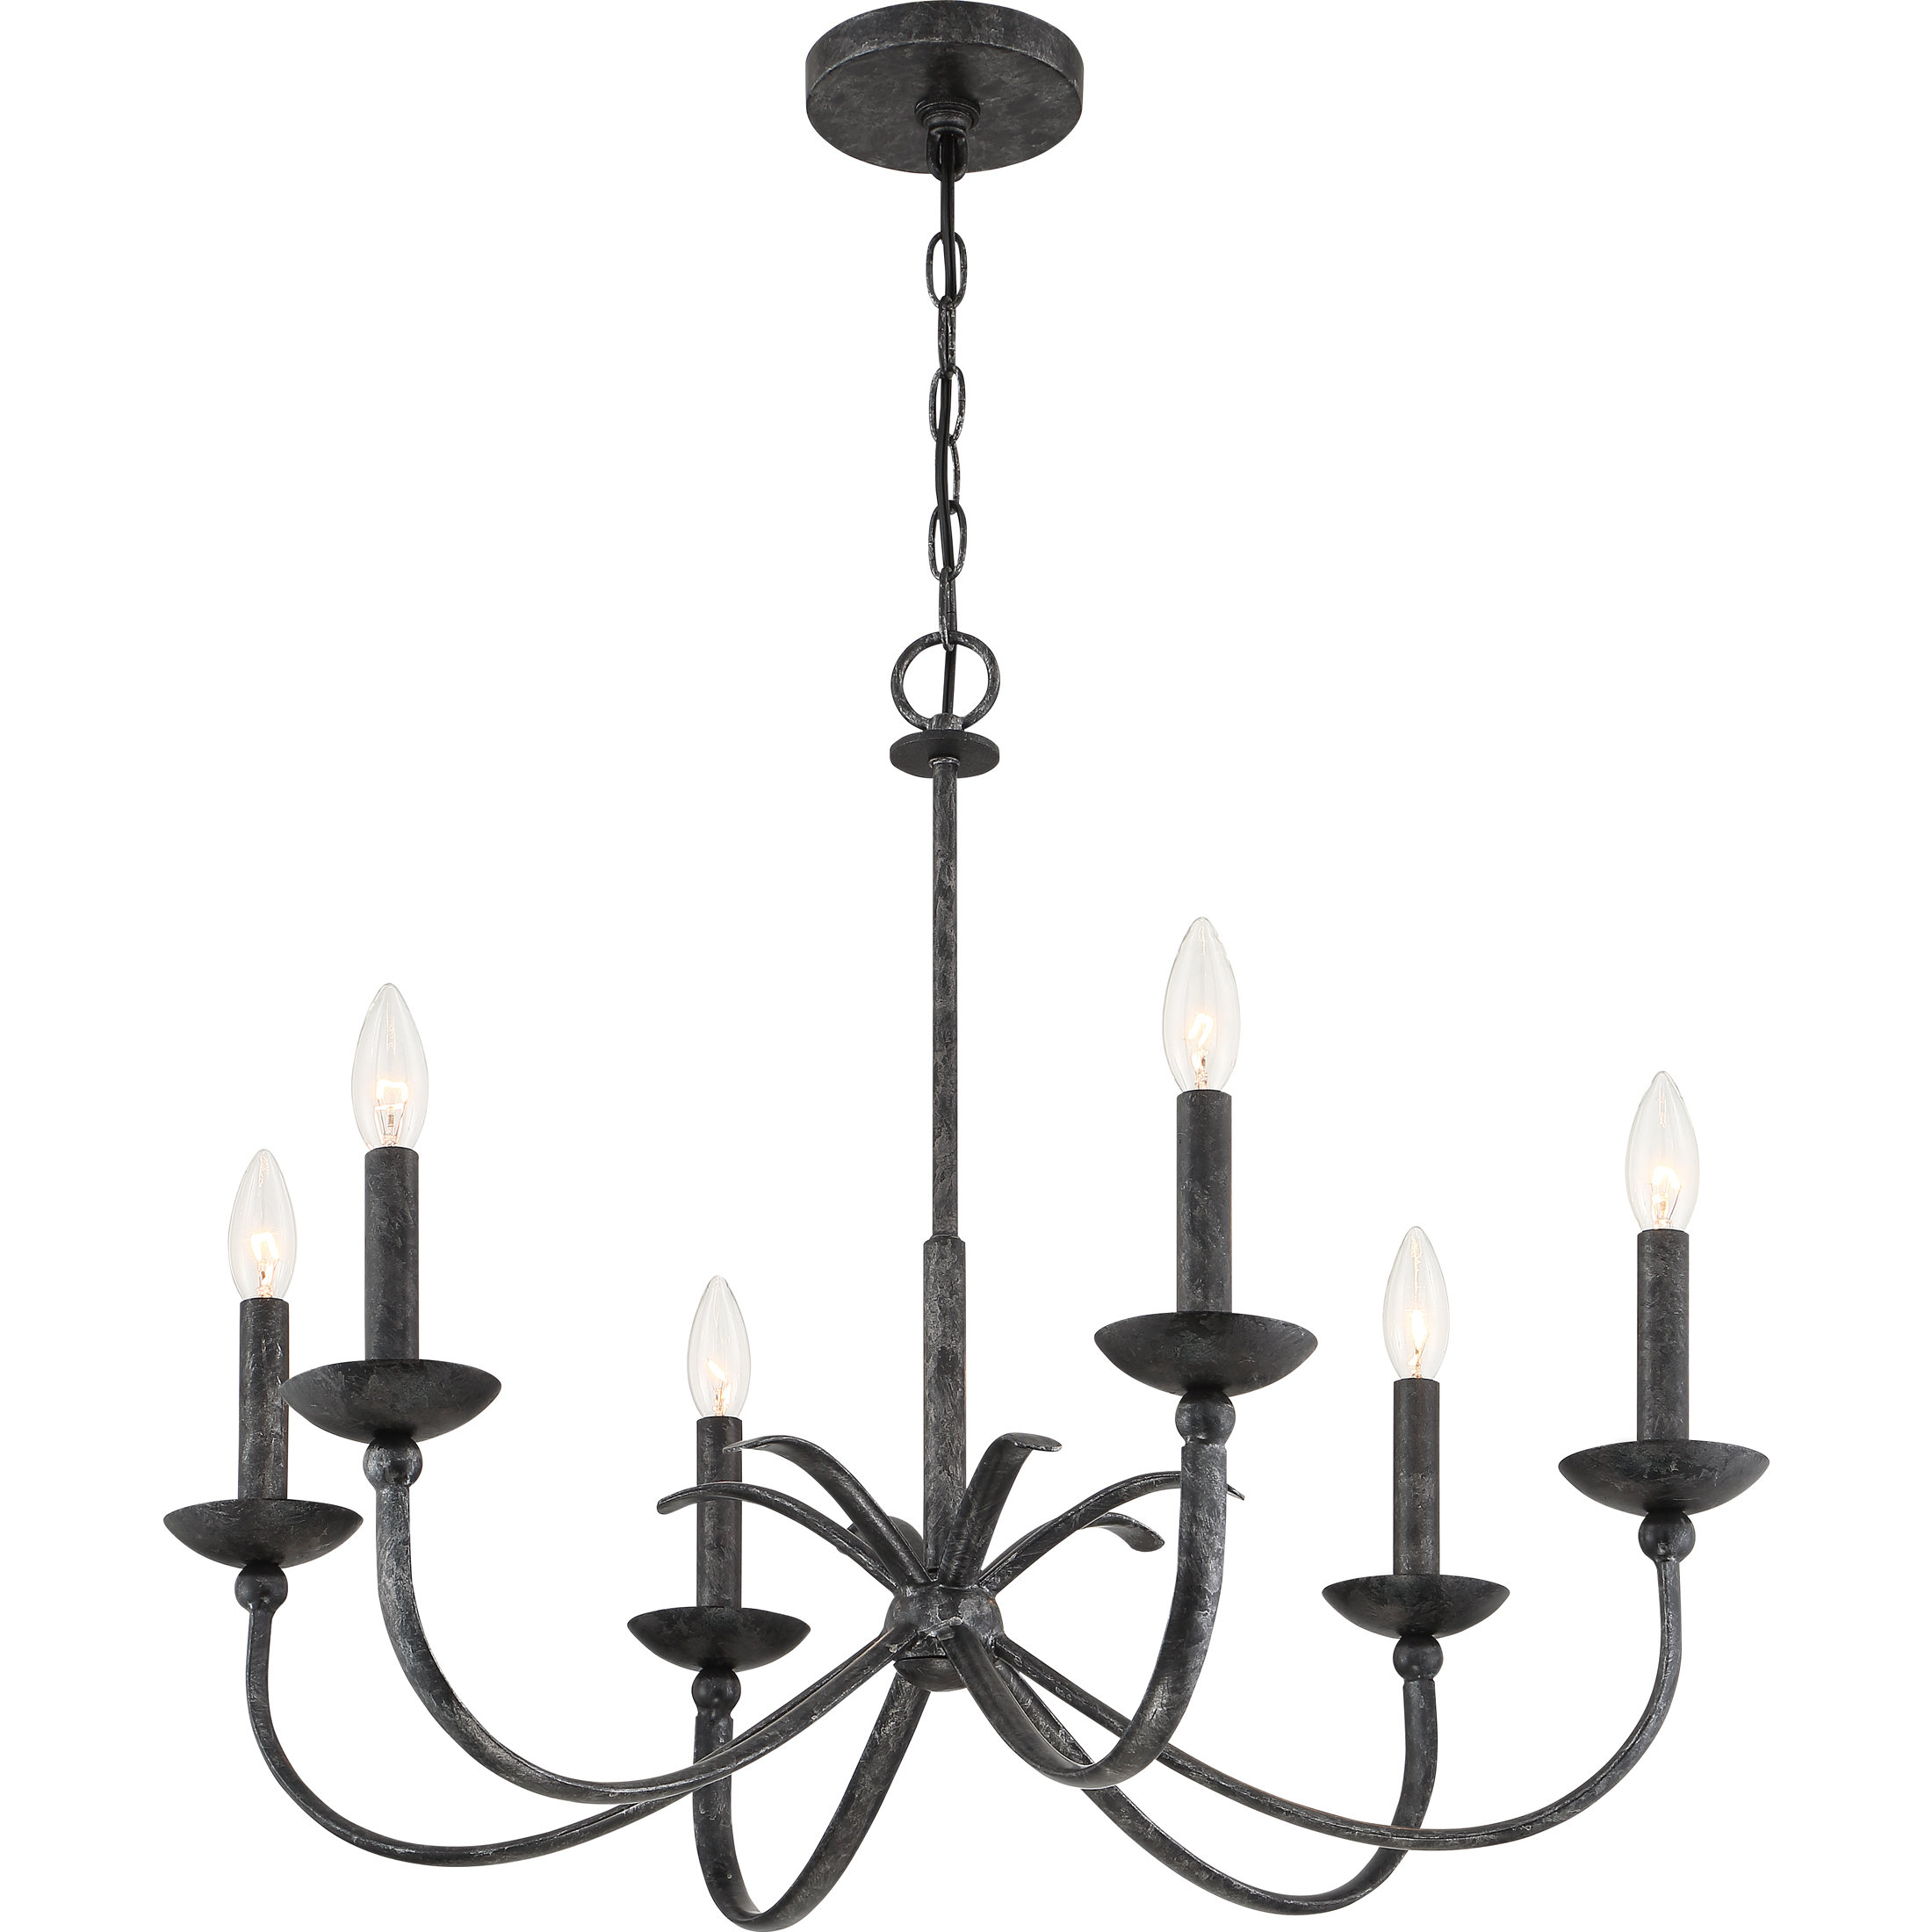 Widely Used Goodin 6 Light Candle Style Chandelier Inside Perseus 6 Light Candle Style Chandeliers (View 8 of 20)